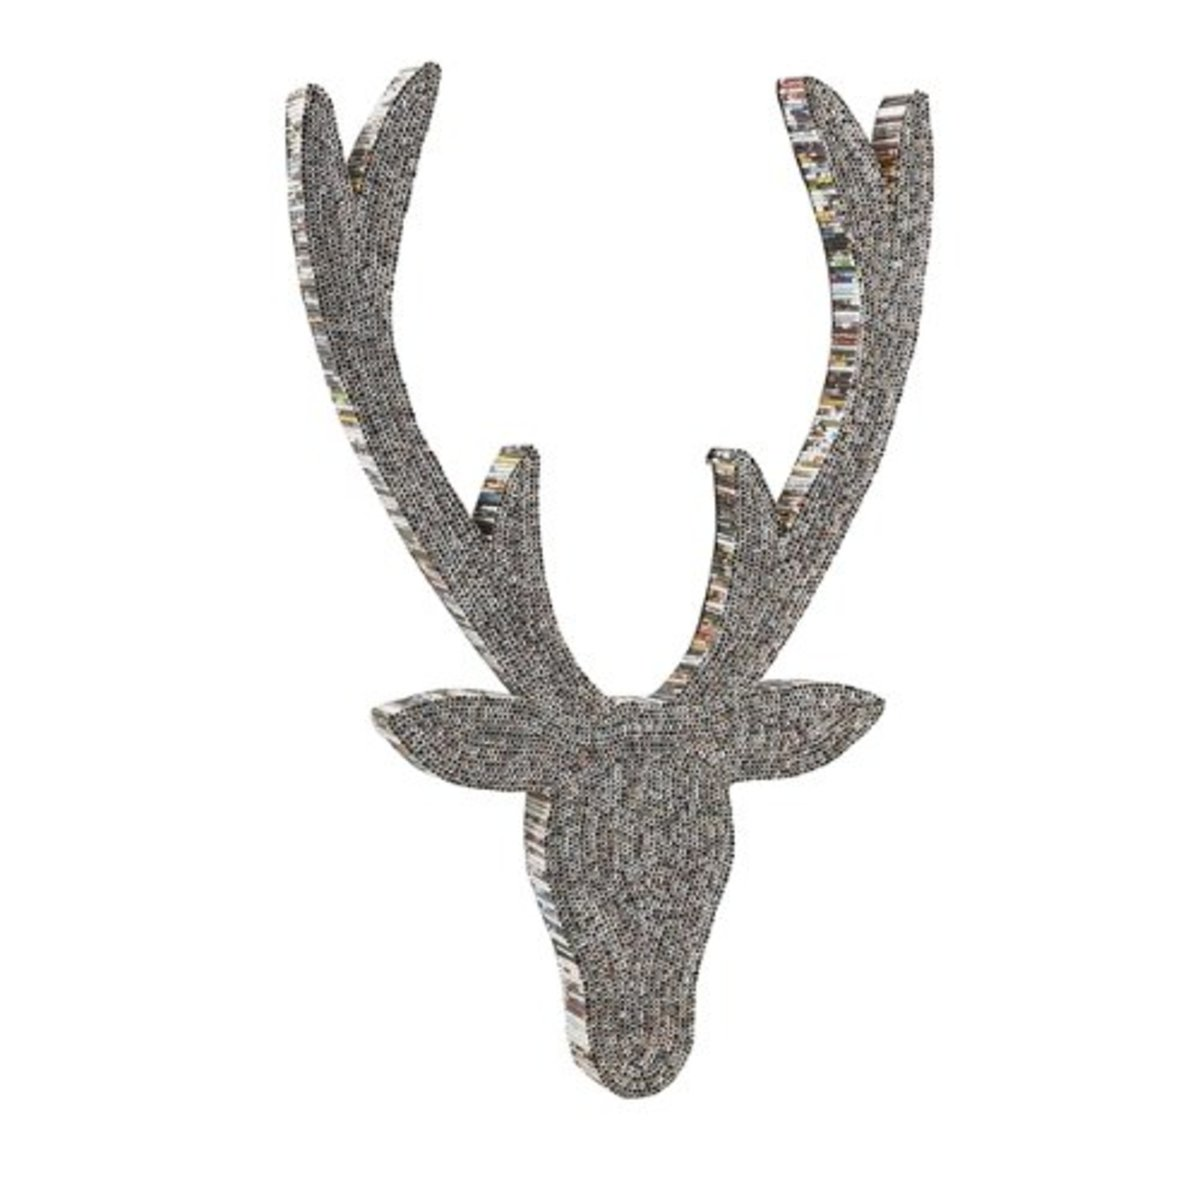 IMAX 89865 Stanley Recycled Magazine Deer Wall Decor